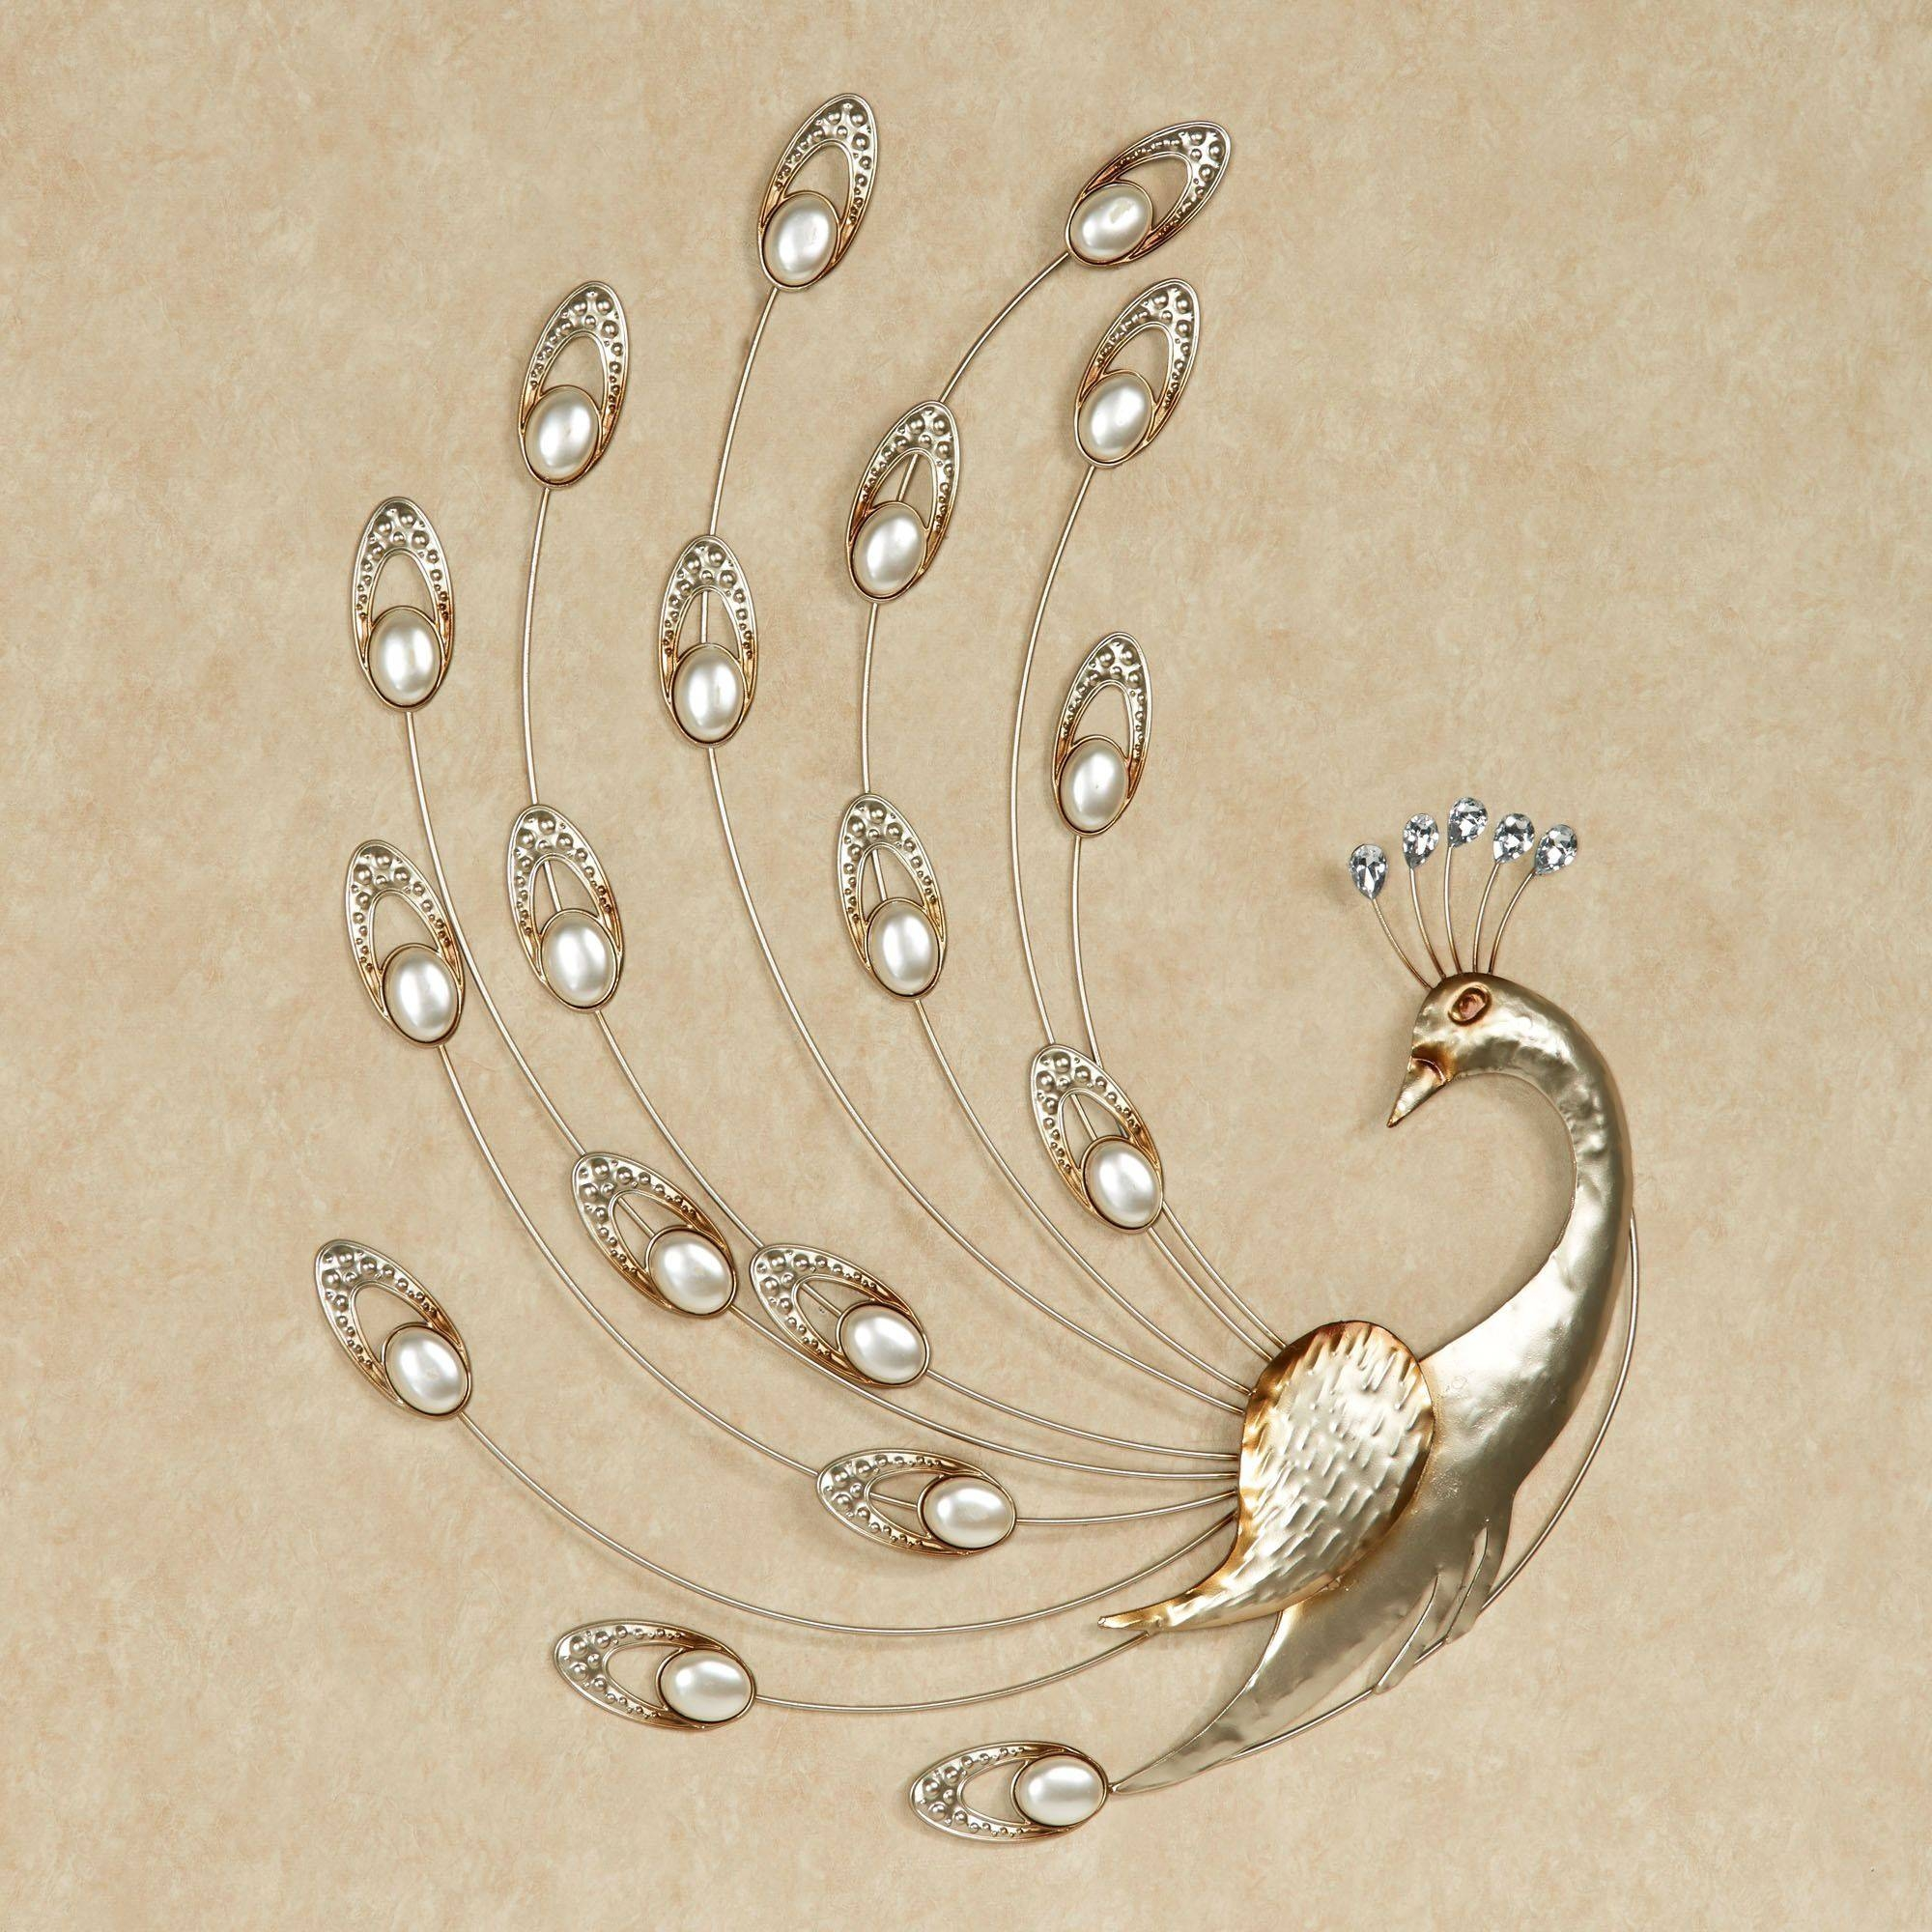 Julietta Pearl Peacock Metal Wall Art Throughout Current Peacock Metal Wall Art (View 9 of 20)